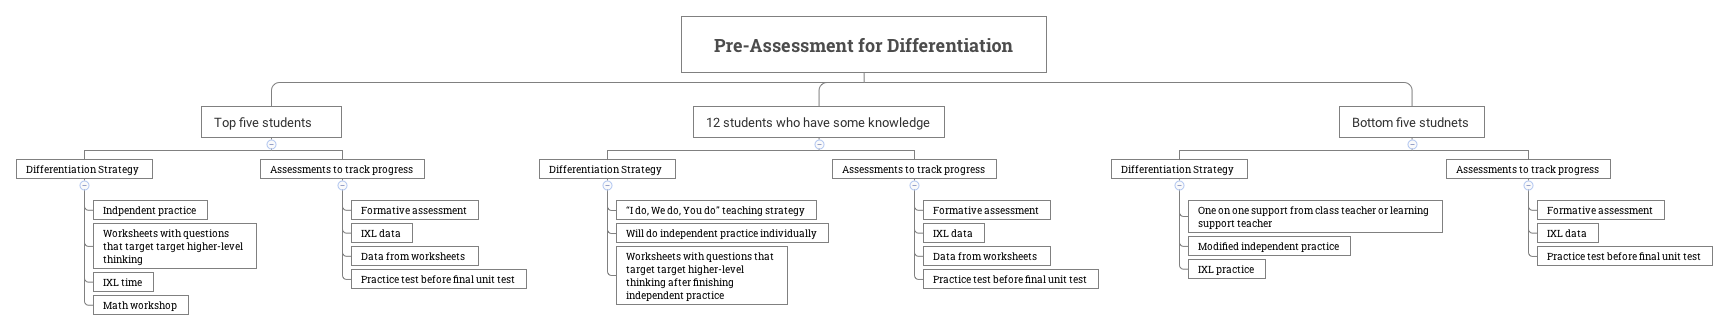 Pre-Assessment for Differentiation